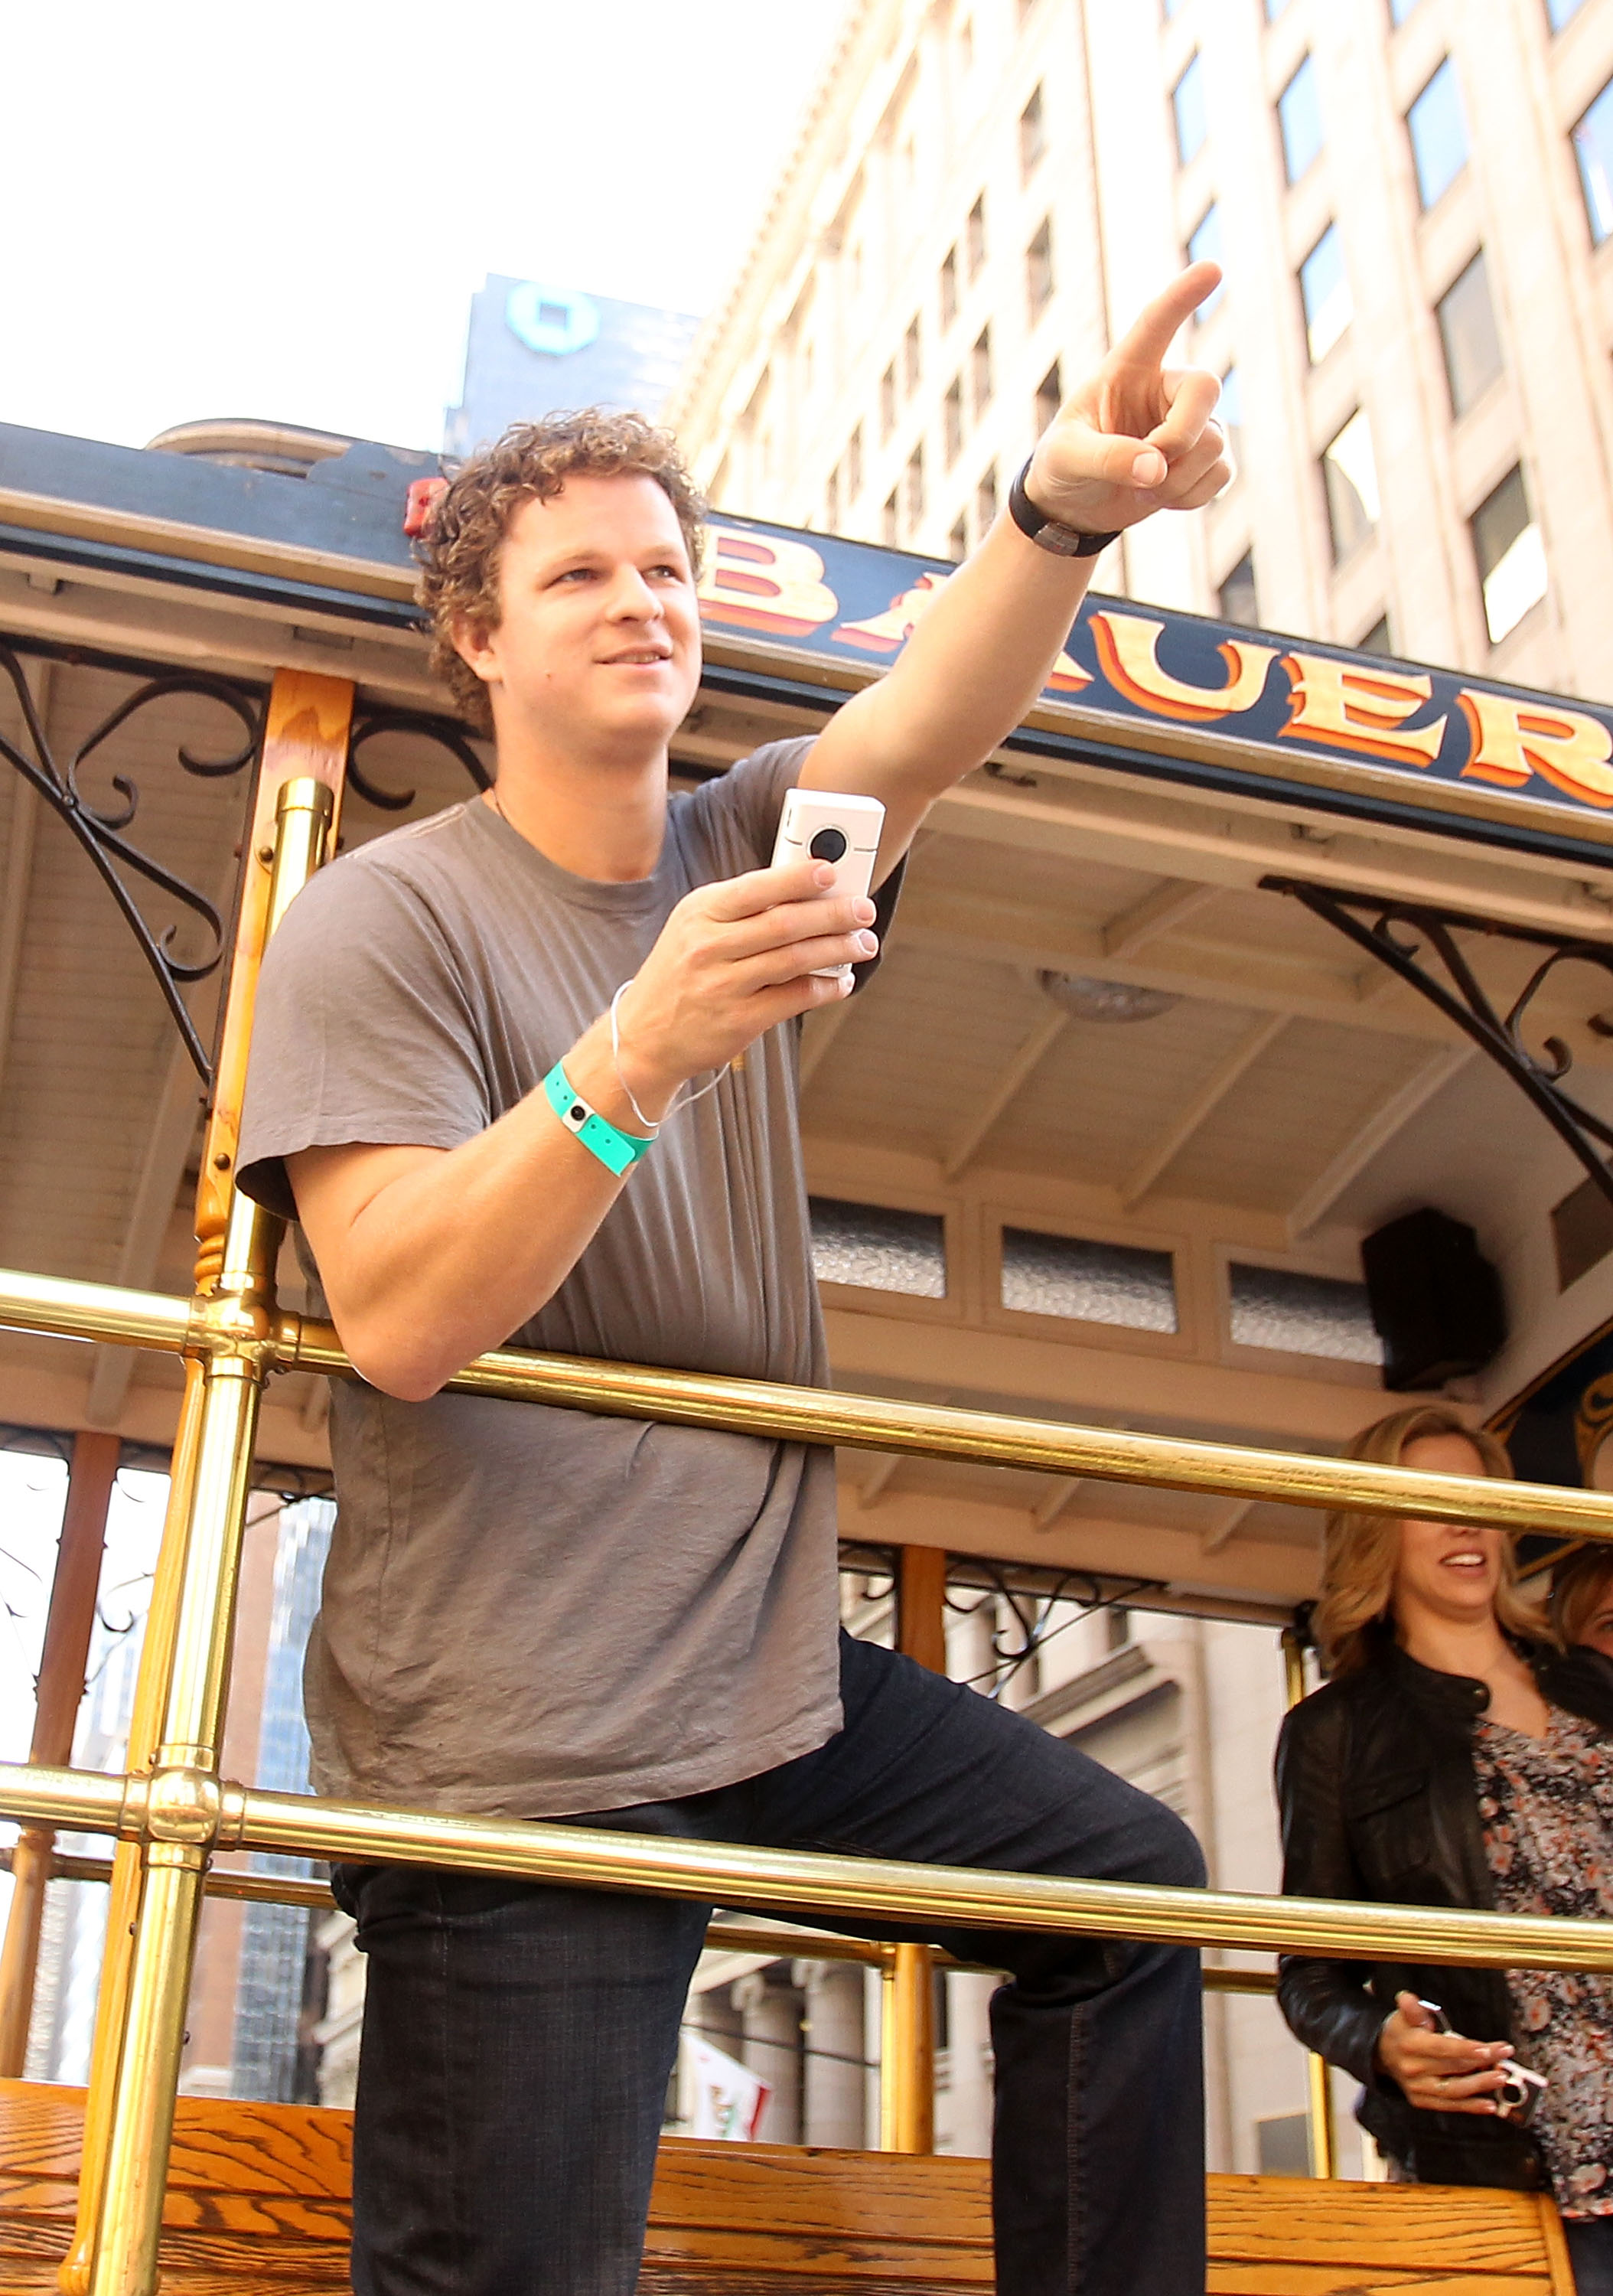 SAN FRANCISCO - NOVEMBER 03:  Matt Cain of the San Francisco Giants waves to the crowd during the San Francisco Giants victory parade on November 3, 2010 in San Francisco, California.  (Photo by Ezra Shaw/Getty Images)